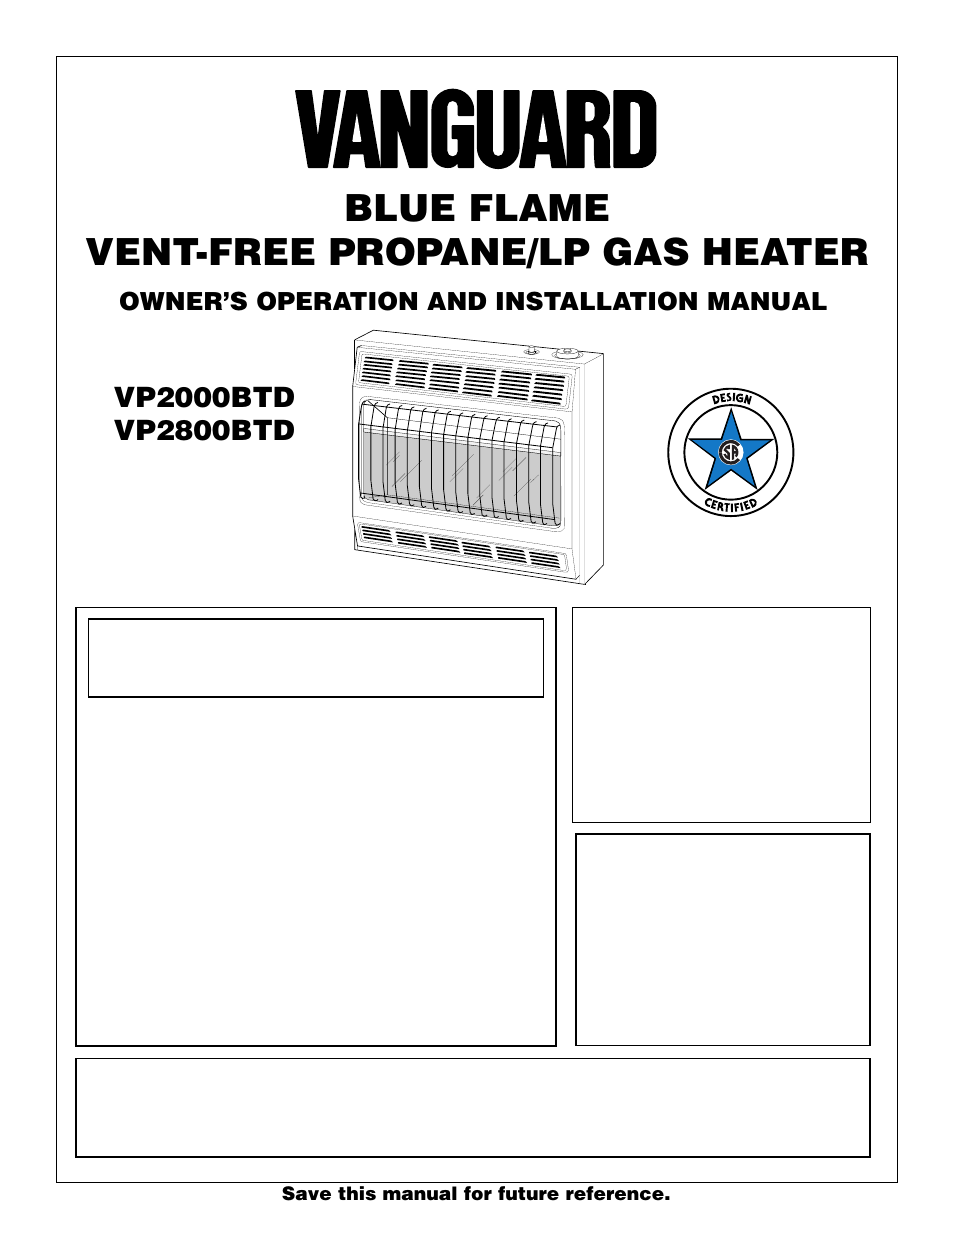 vanguard heating vp2000btd user manual 20 pages also for vp2800btd